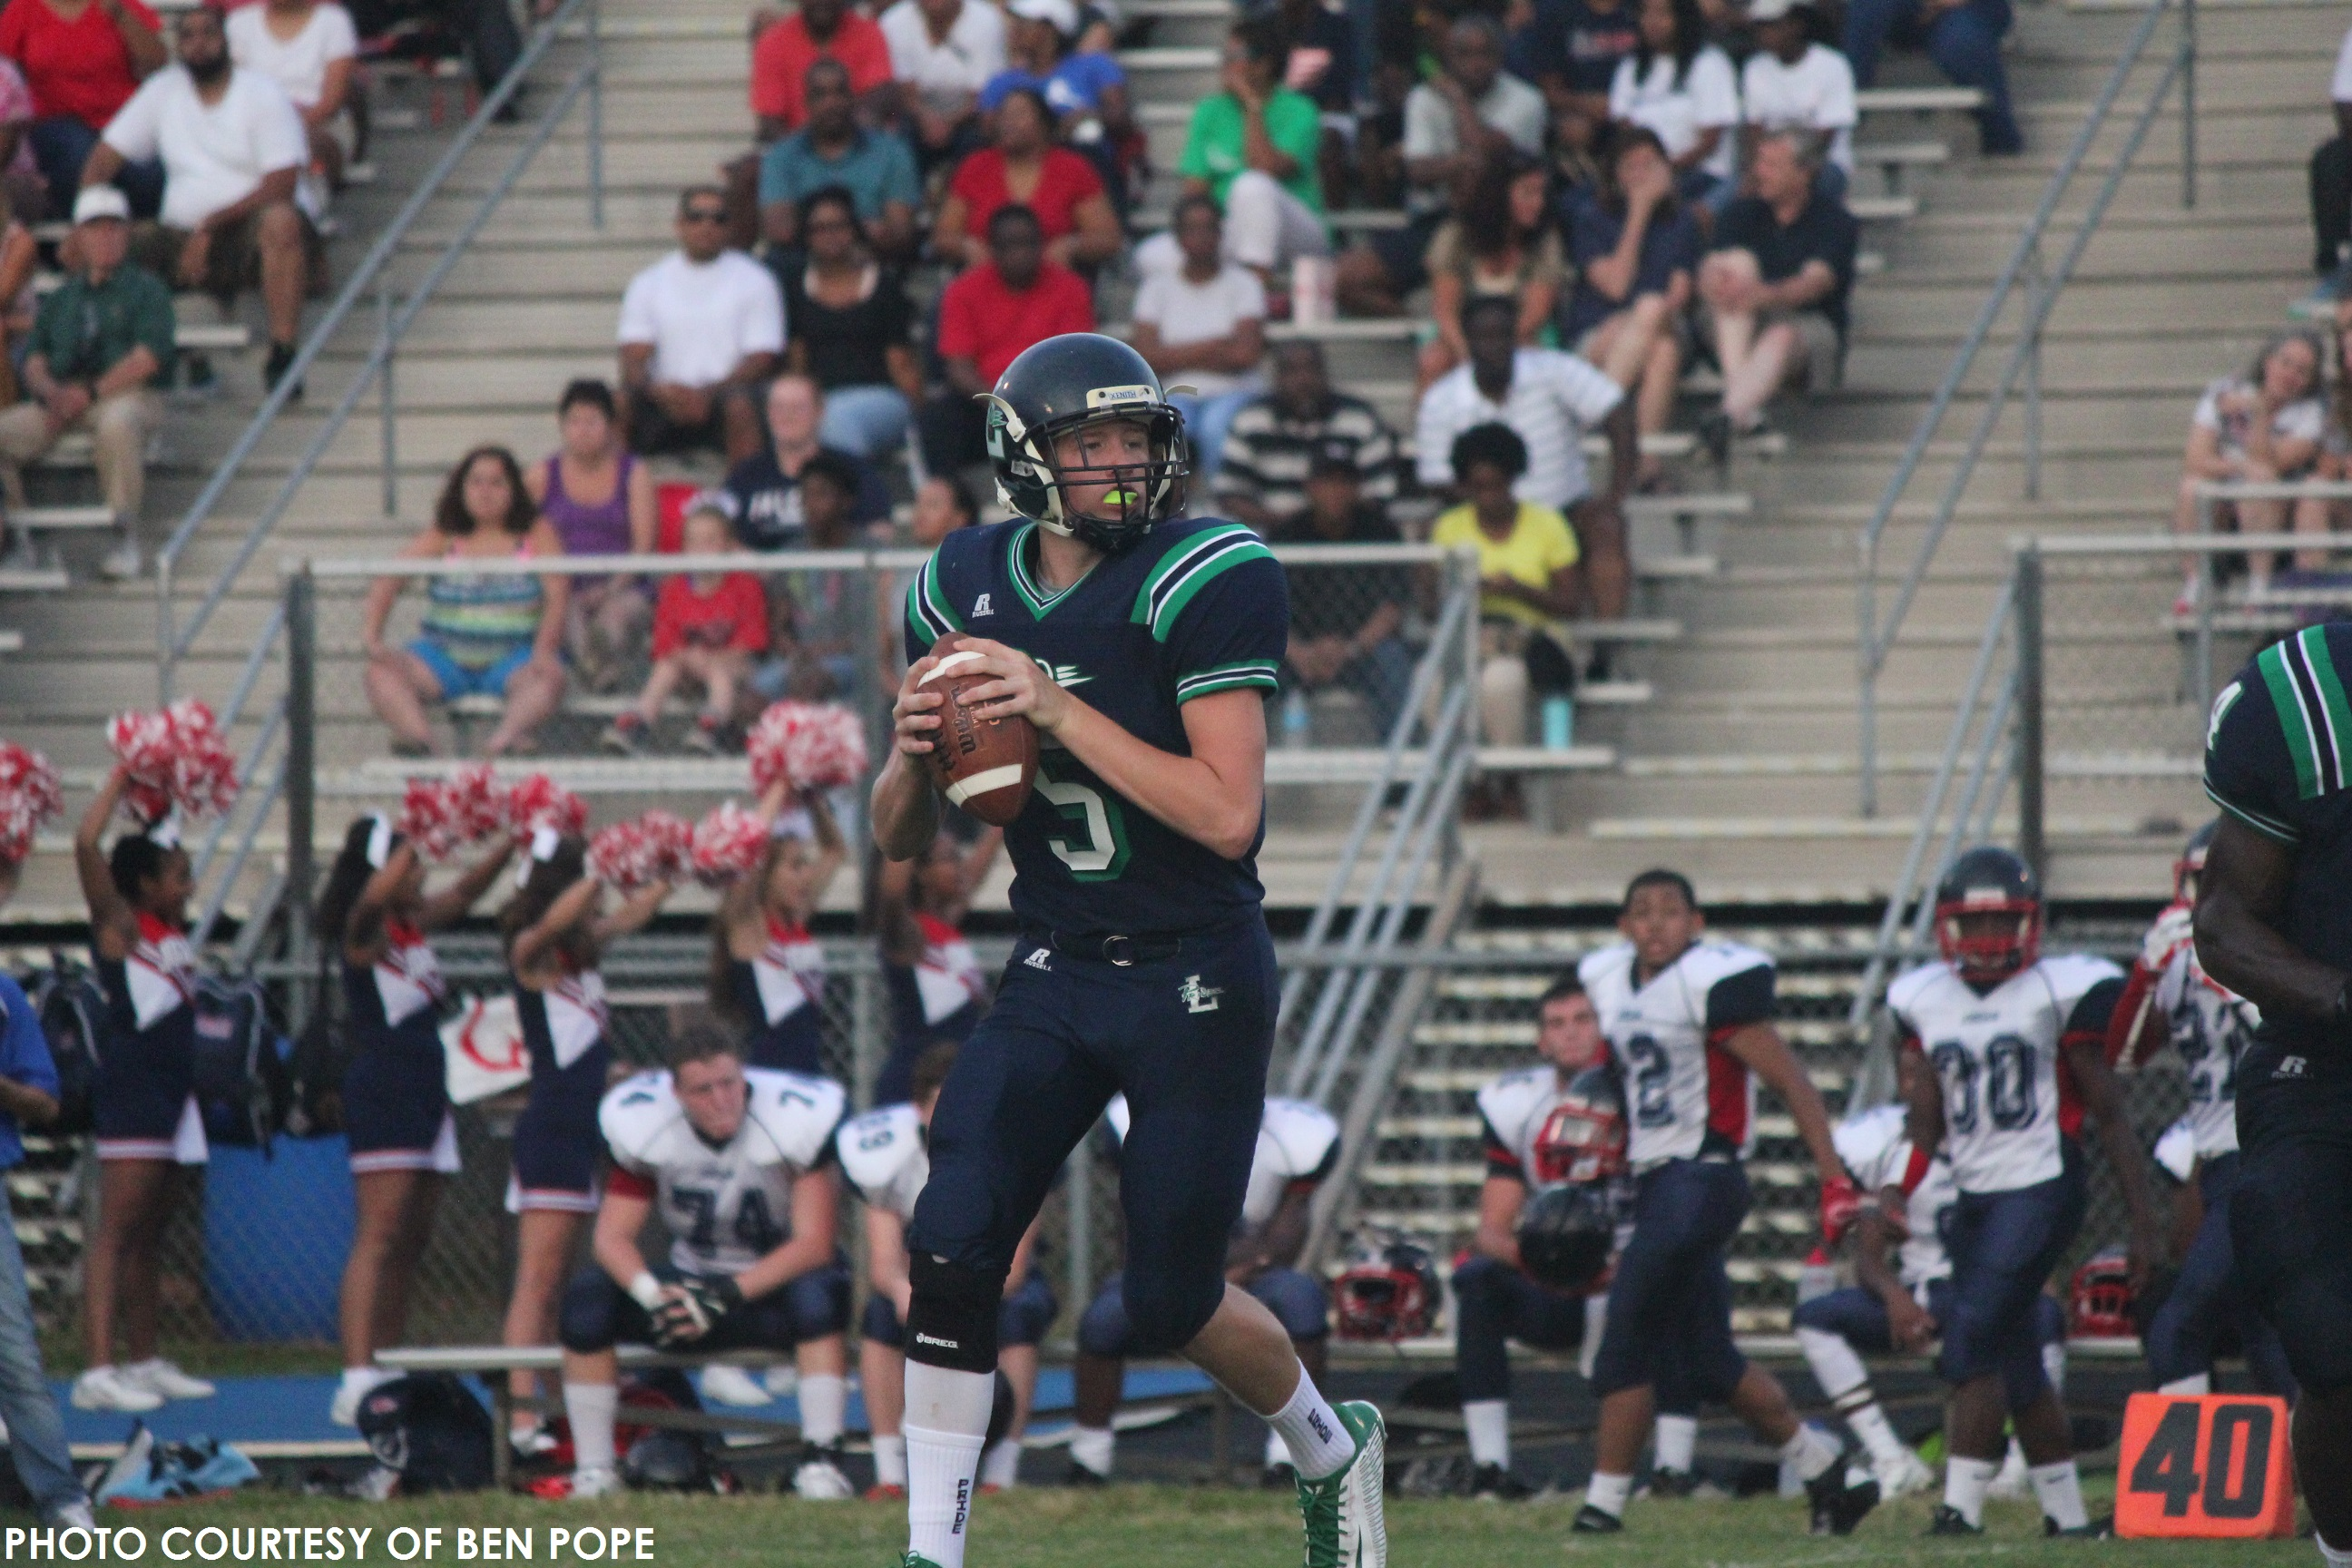 Clay Vick, junior quarterback, drops back to pass and looks for a target. Vick completed over 80% of his attempts for three touchdowns.